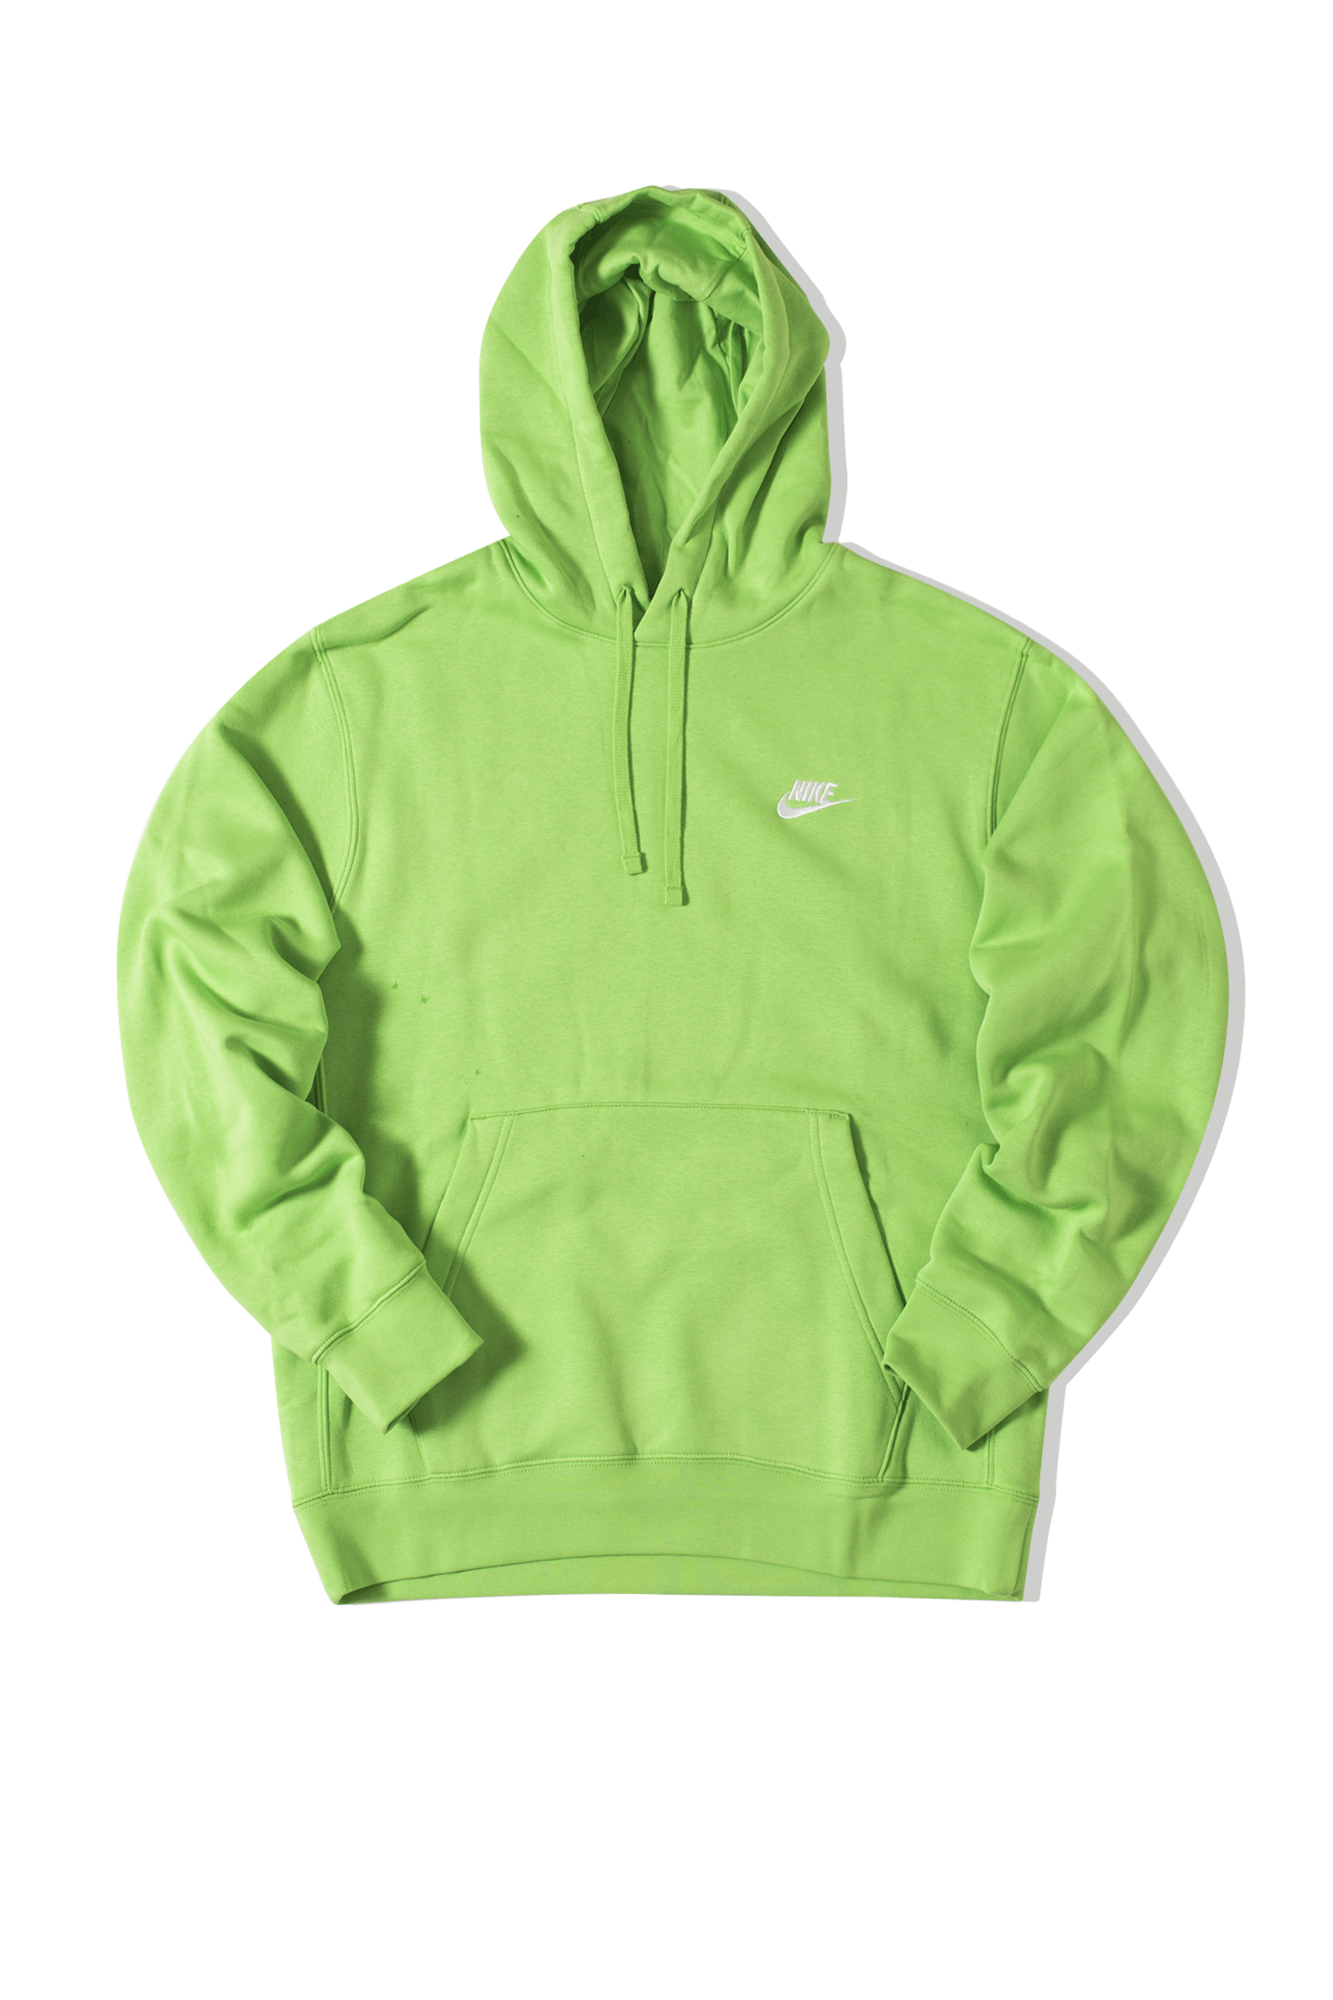 NSW Club Hooded sweatshirt Verde